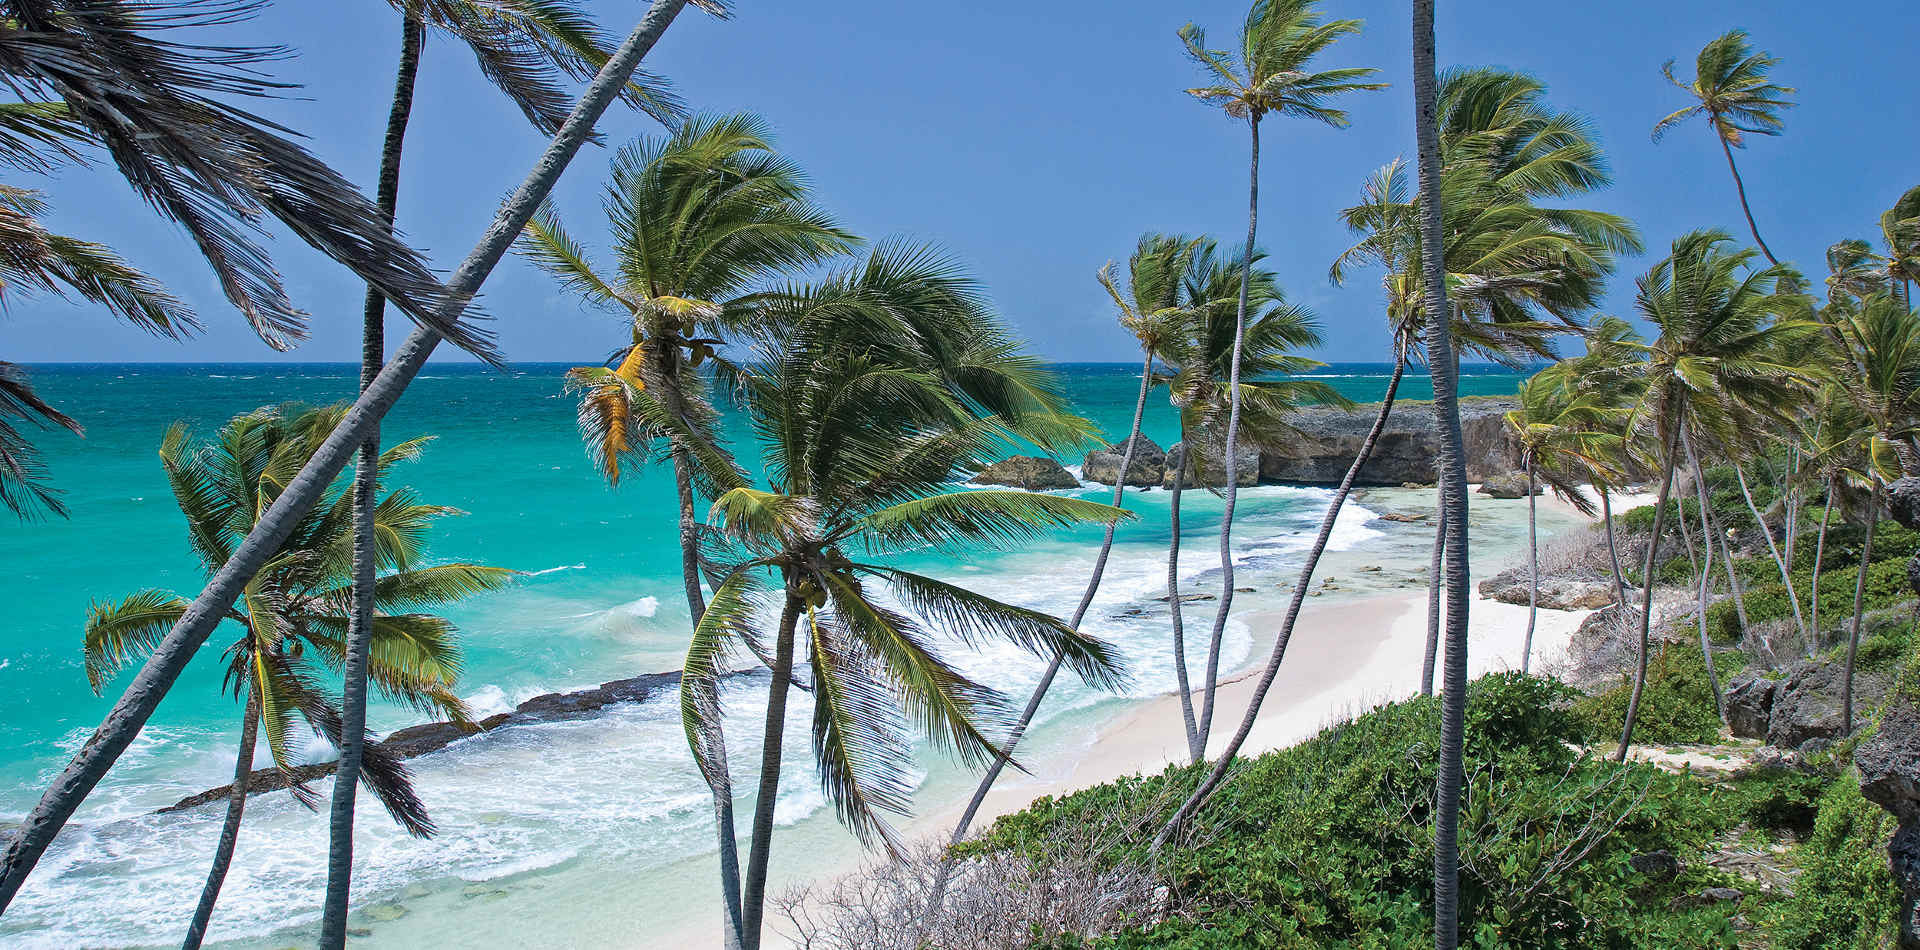 Luxusreise Barbados, Luxushotels Barbados